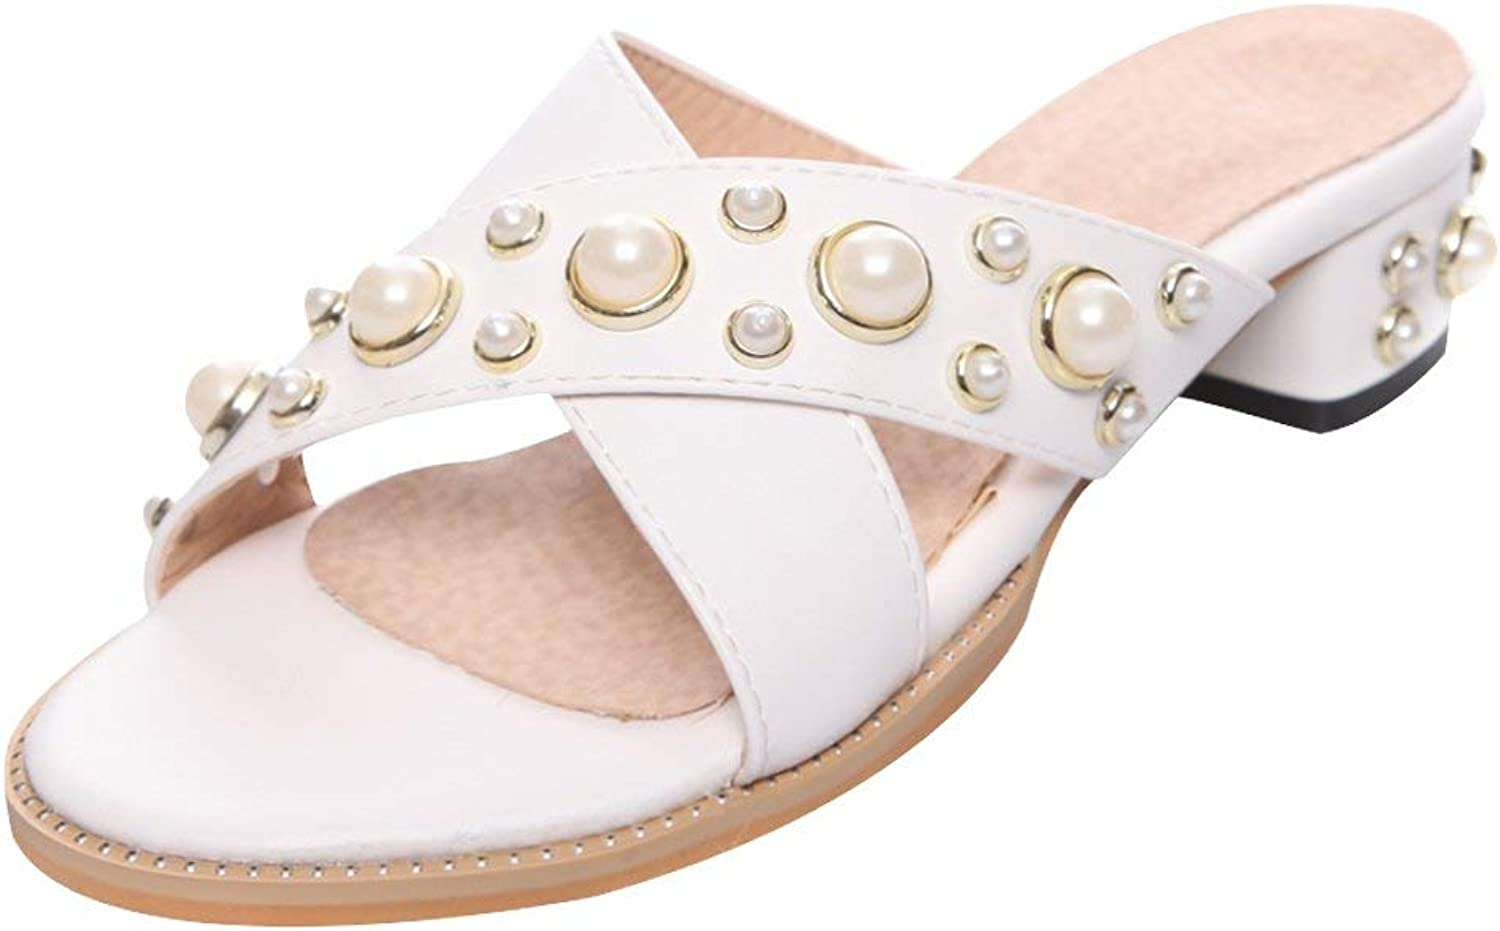 Gcanwea Women's Open Toe Low Heel Studded Slippers Sandals Summer Pearls Casual Stylish Ladies Non-Slip Soles Flexibility Comfortable Breathable Skinny White 4.5 M US Sandals